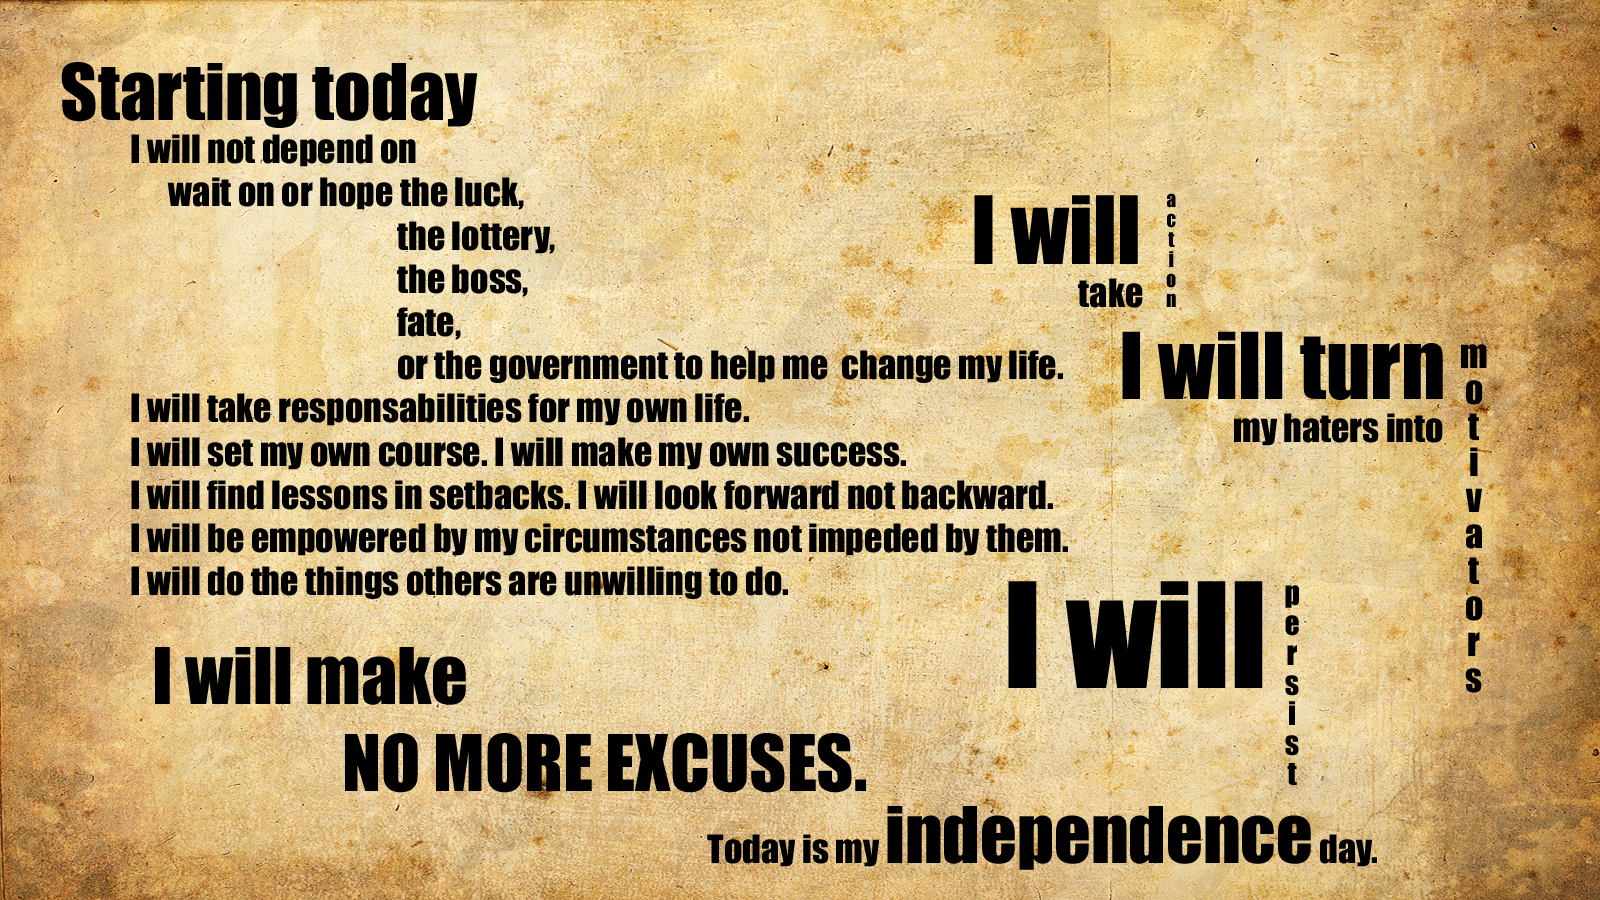 Inspirational Thought For The Day Simple 15 August  Independence Day Motivational Thoughts Inspirational